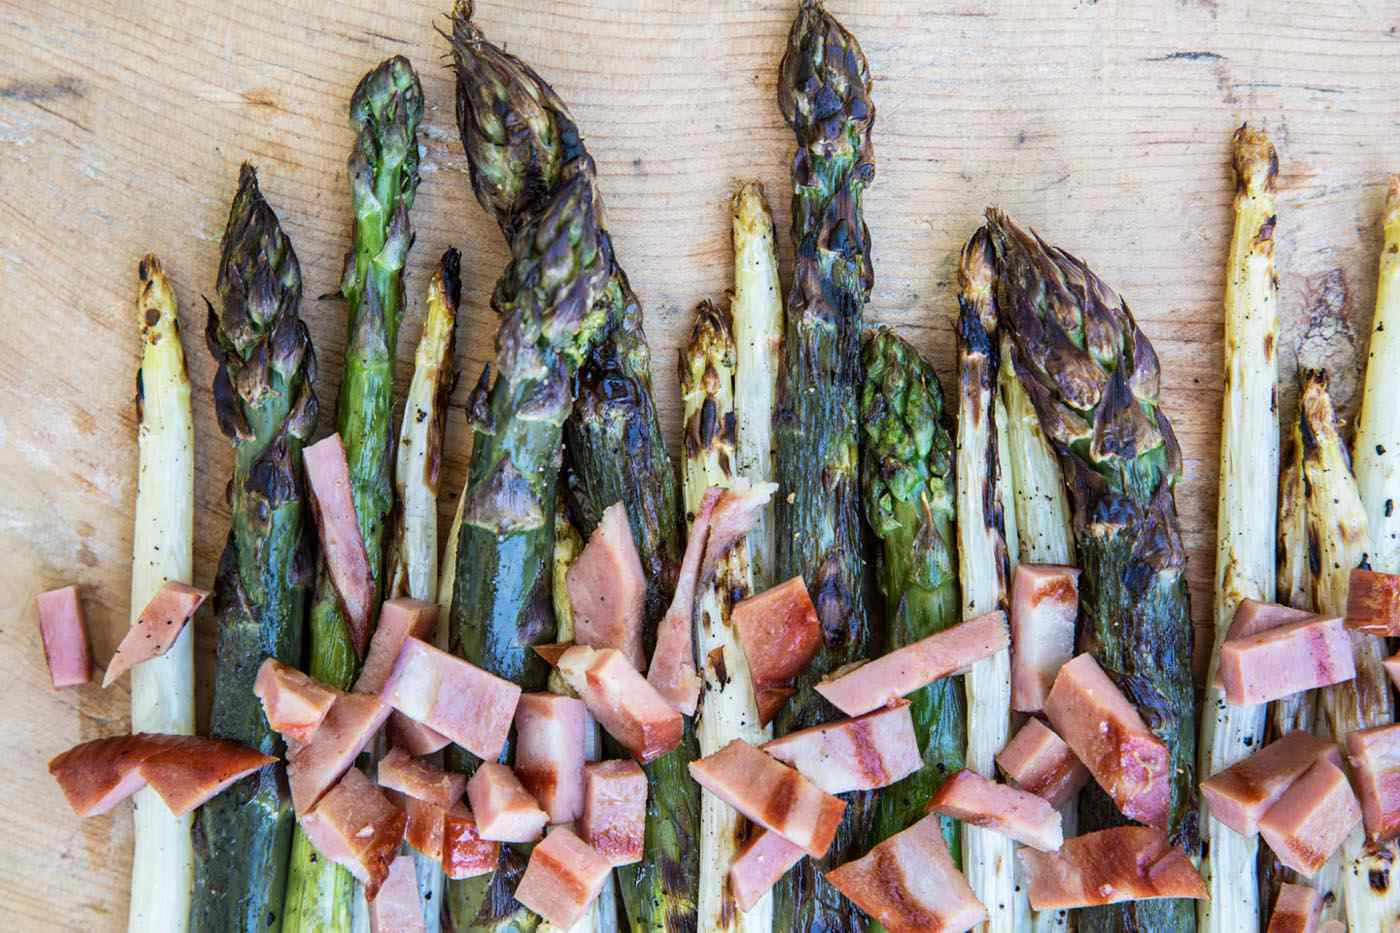 Grilled asparagus with chopped mortadella